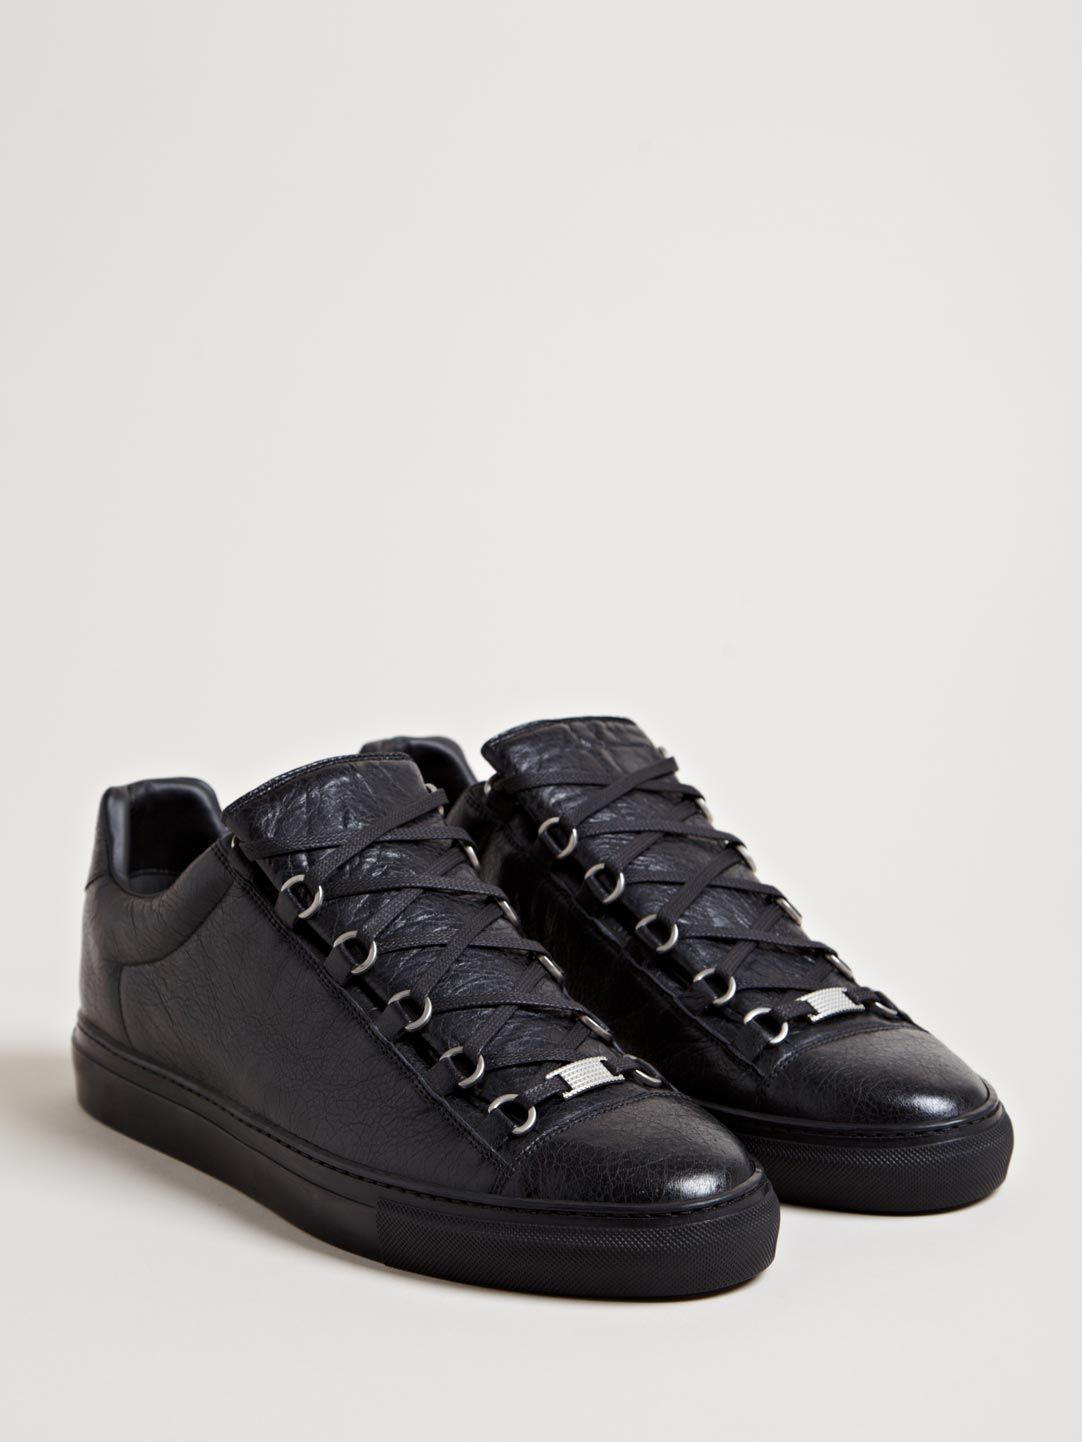 outlet classic styles outlet boutique Balenciaga Men's Arena Trainers | Balenciaga arena sneakers ...